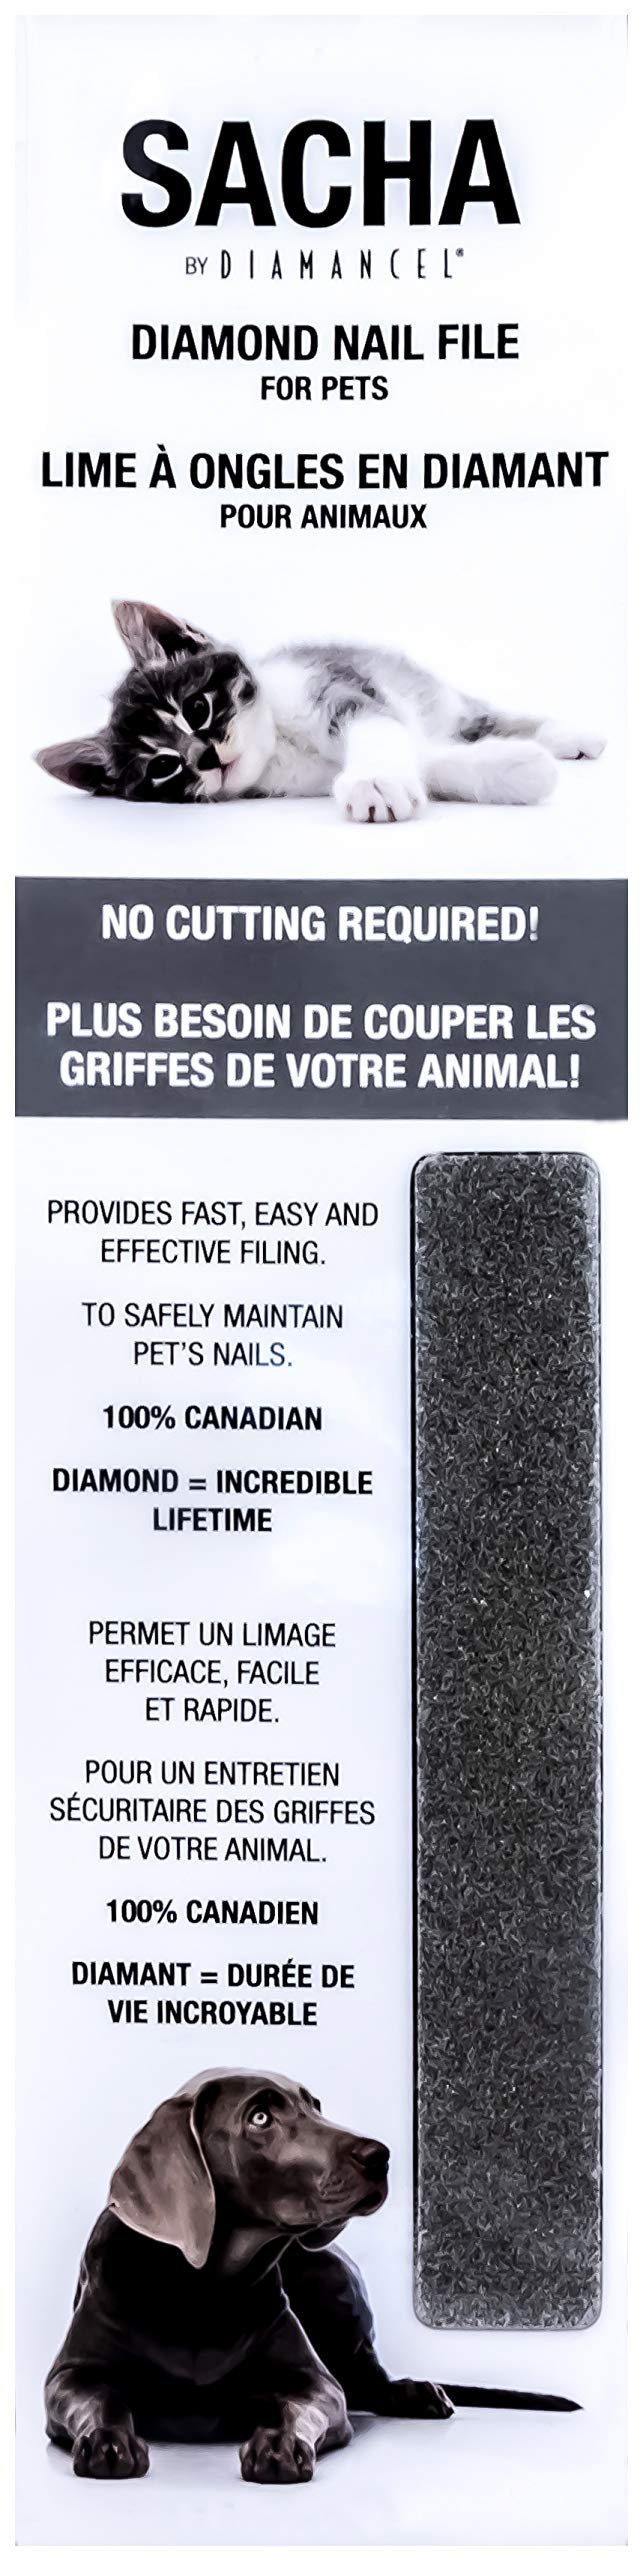 Diamancel - Sacha Nail File for Pets - for Regular Maintenance of Your Pet's Nails Between Groomings by Diamancel